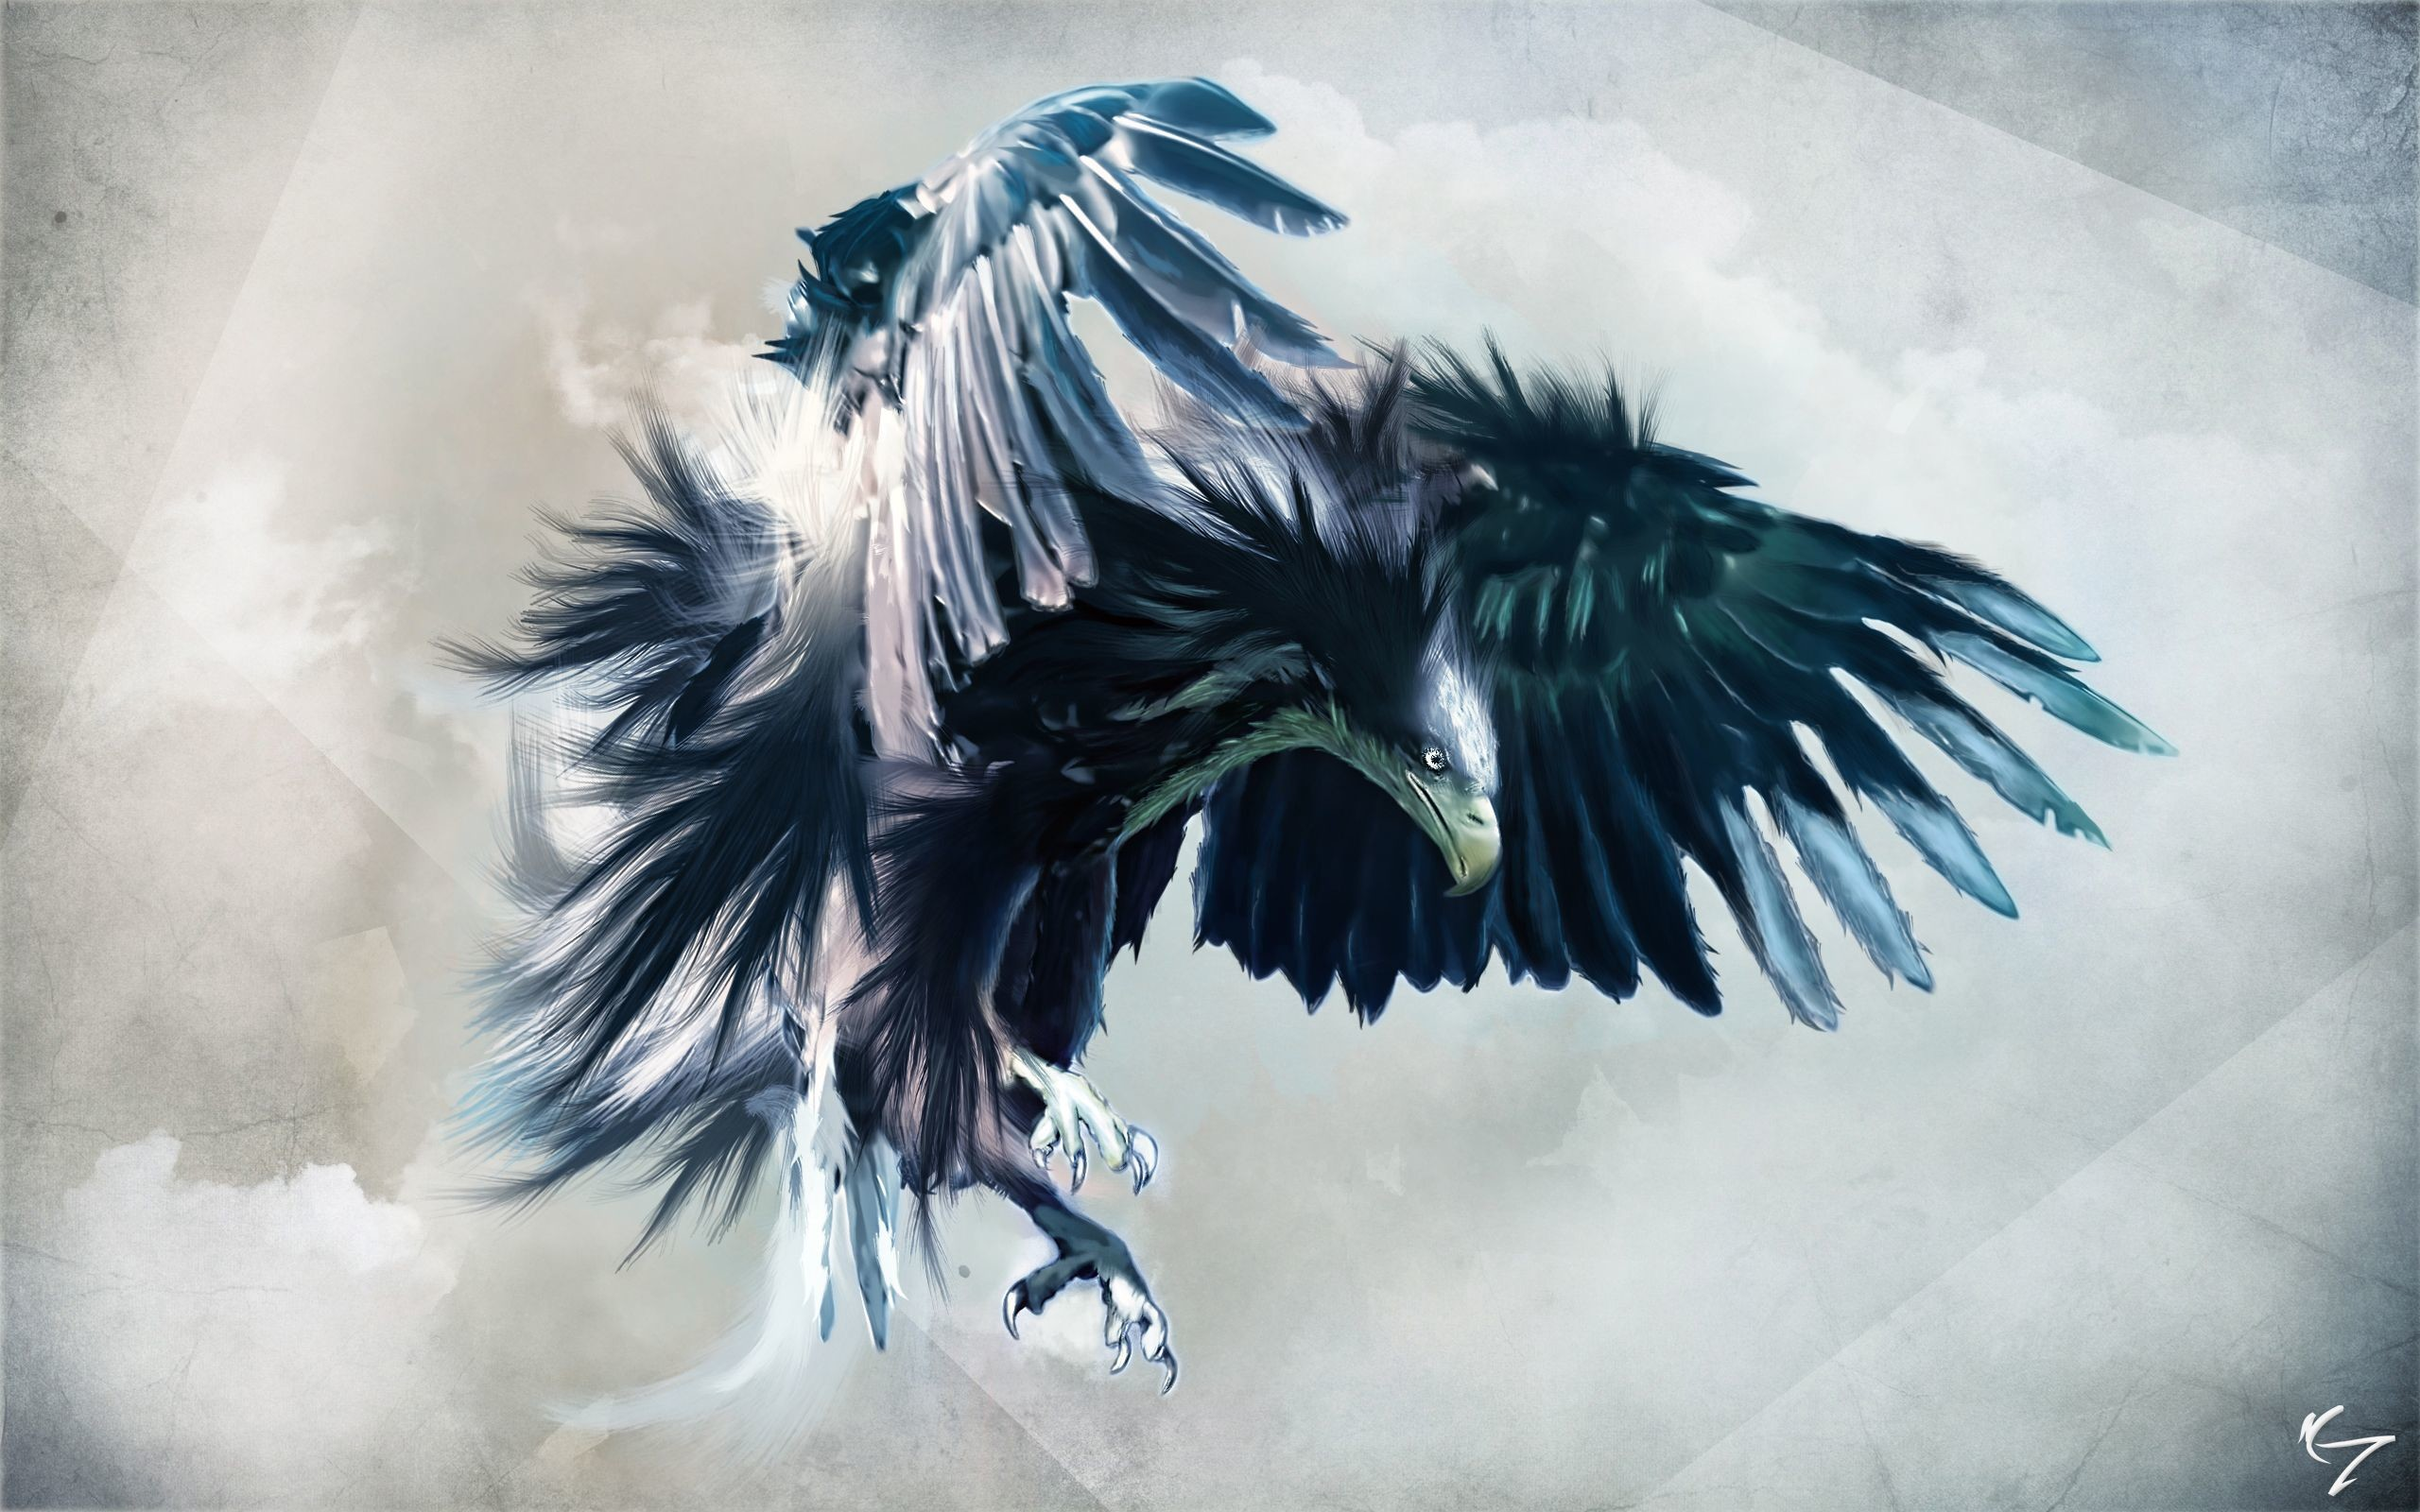 2048x1335 philadelphia eagles wallpaper android